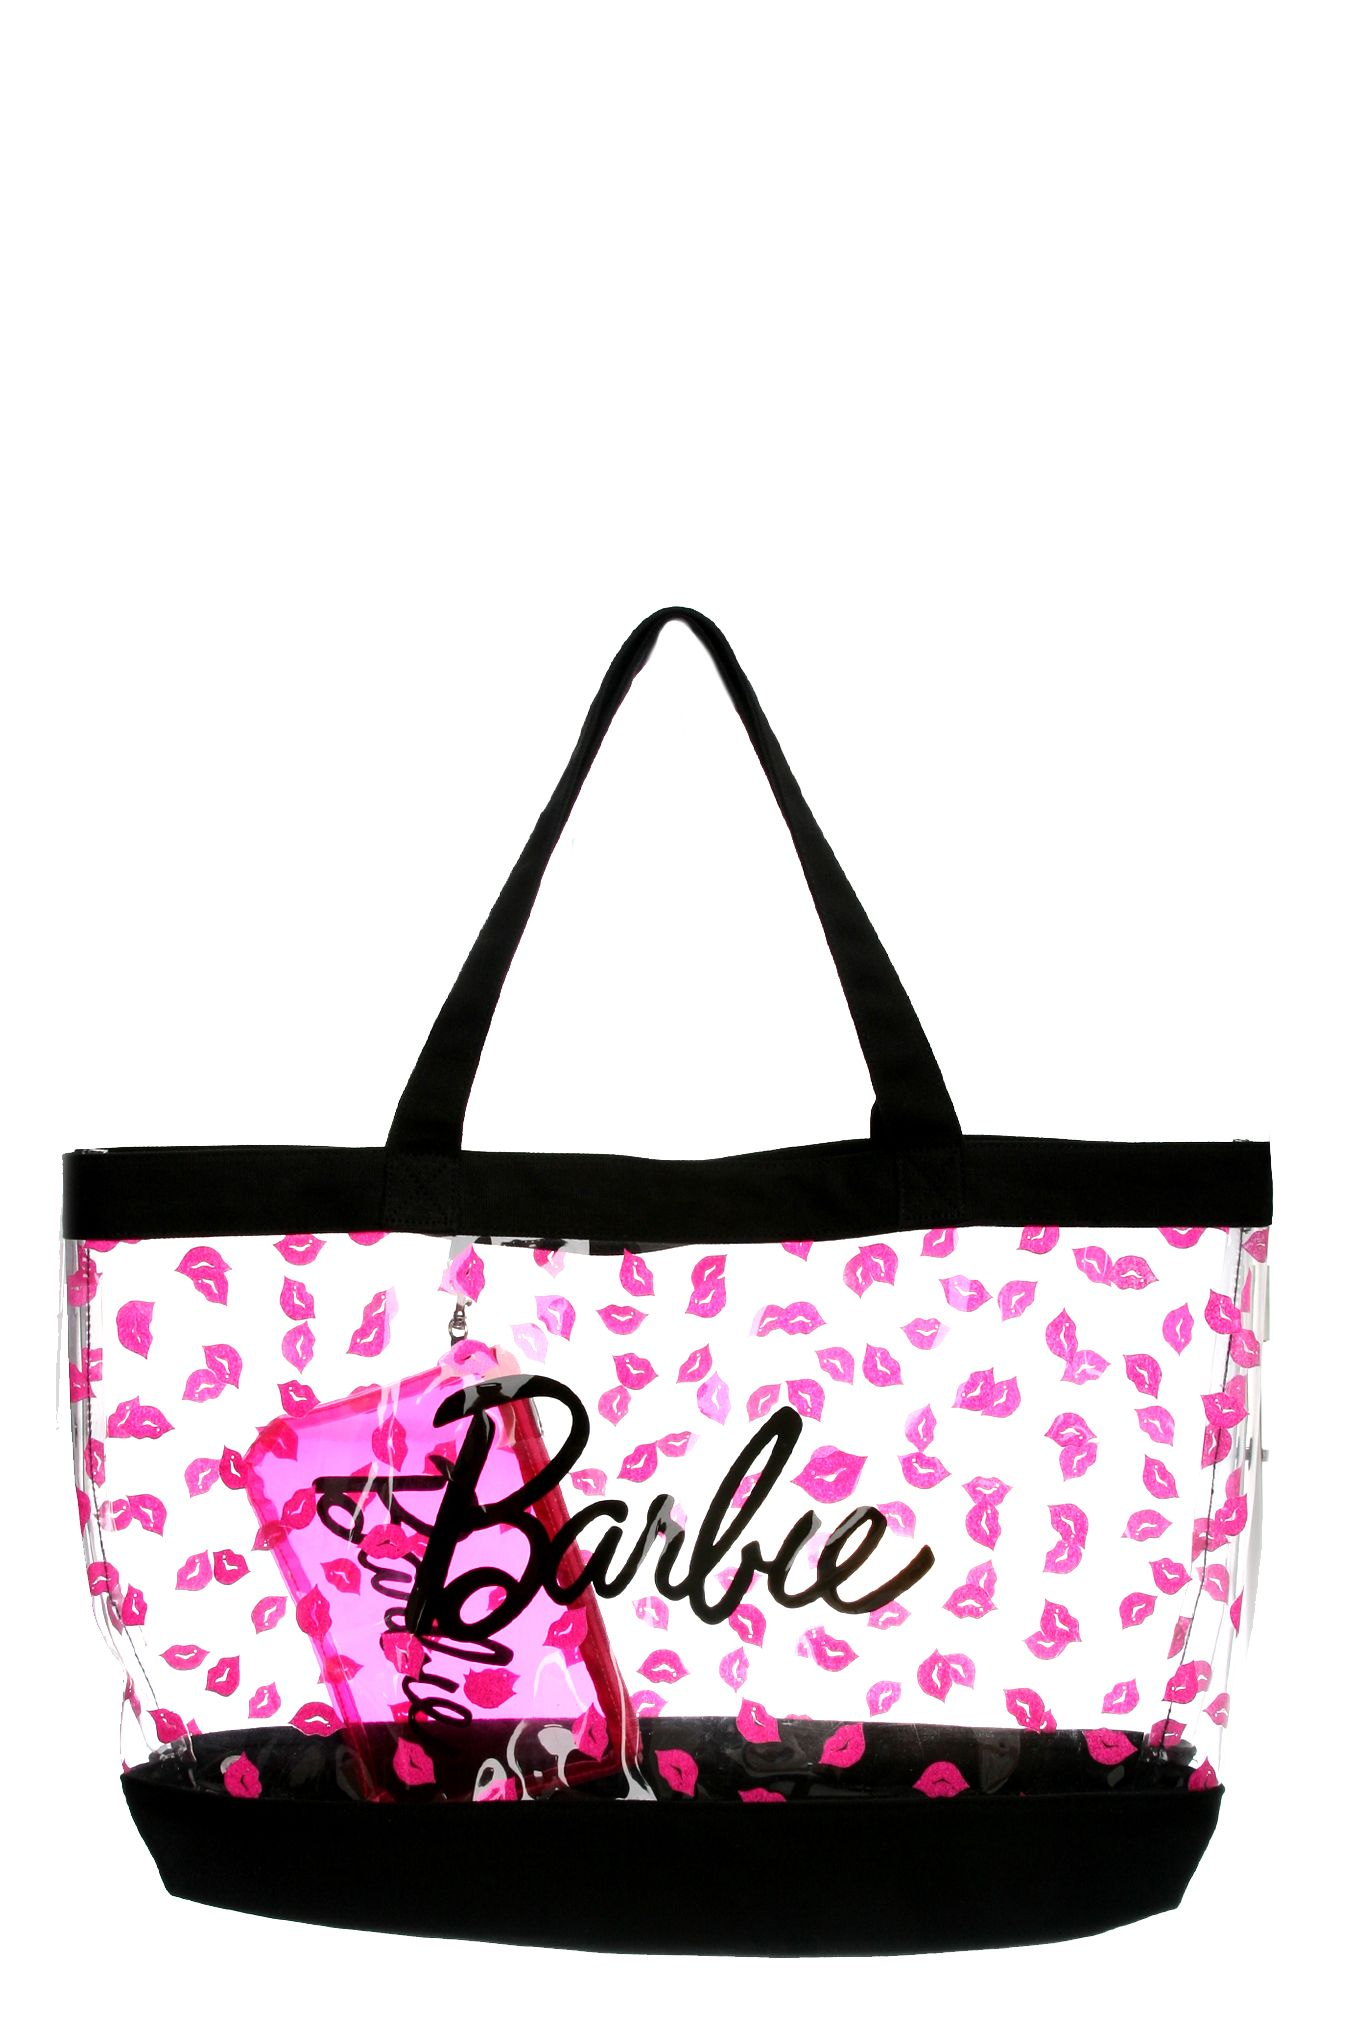 2f673964efc6 Barbie Pink Glitter Lips Beach Tote